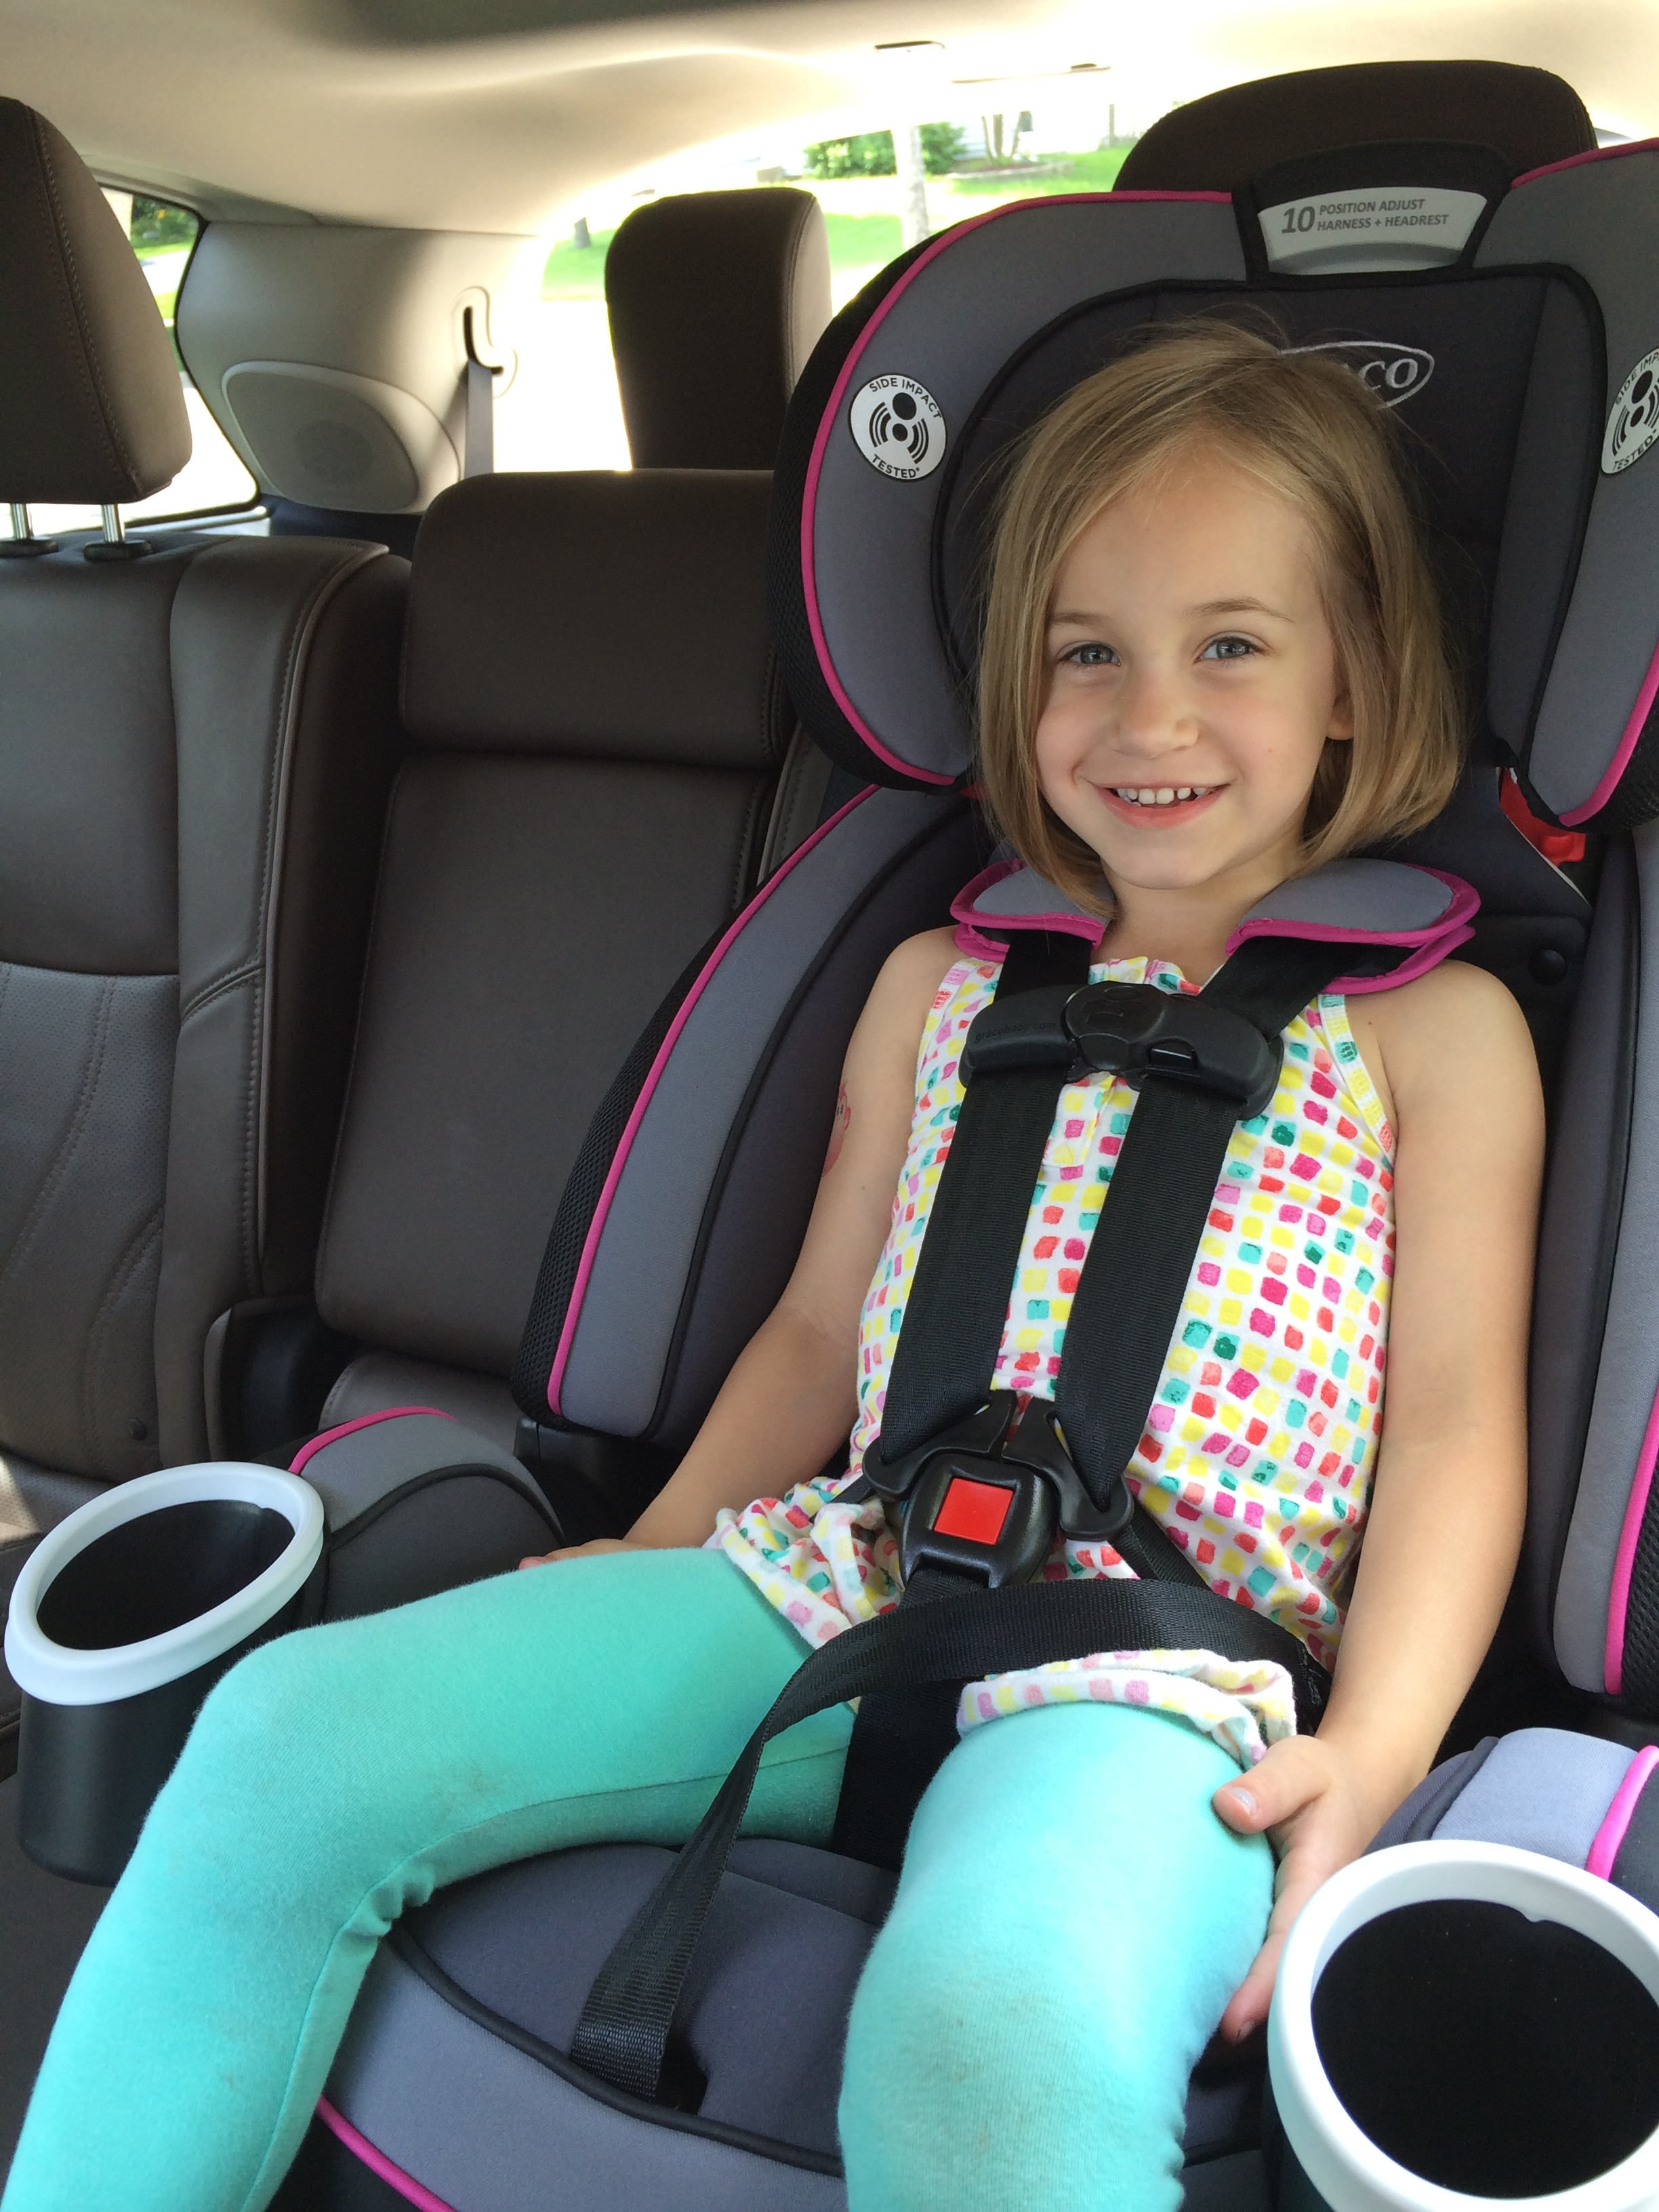 Rear Facing Car Seat Behind Driver Carseatblog The Most Trusted Source For Car Seat Reviews